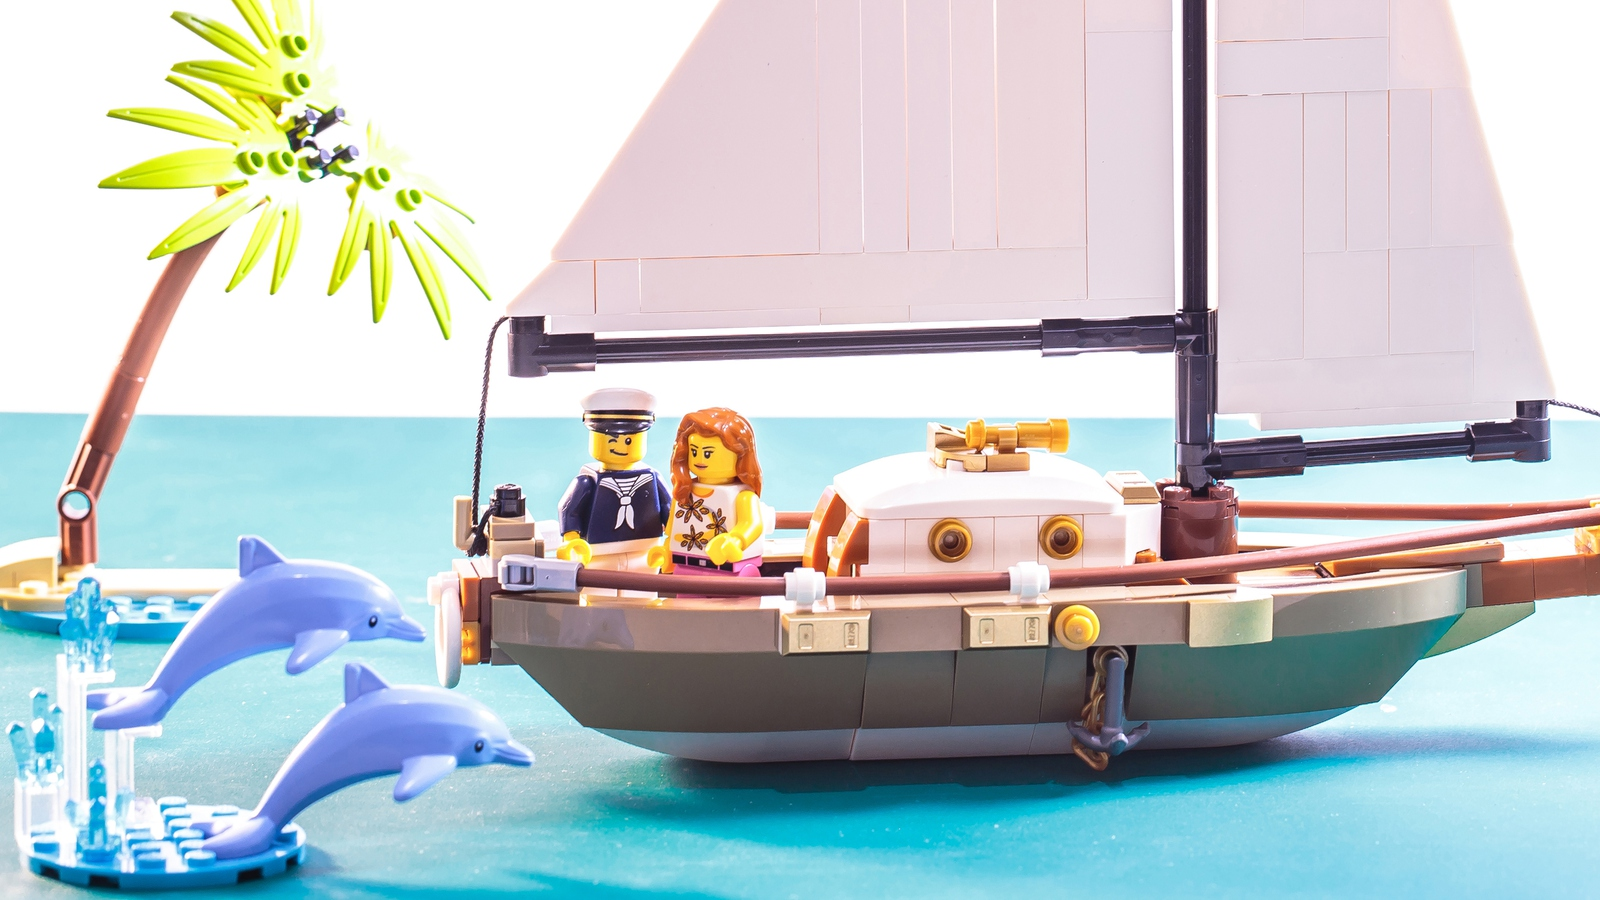 lego-ideas-sailing-ship-adventure-yc-solo-2 zusammengebaut.com